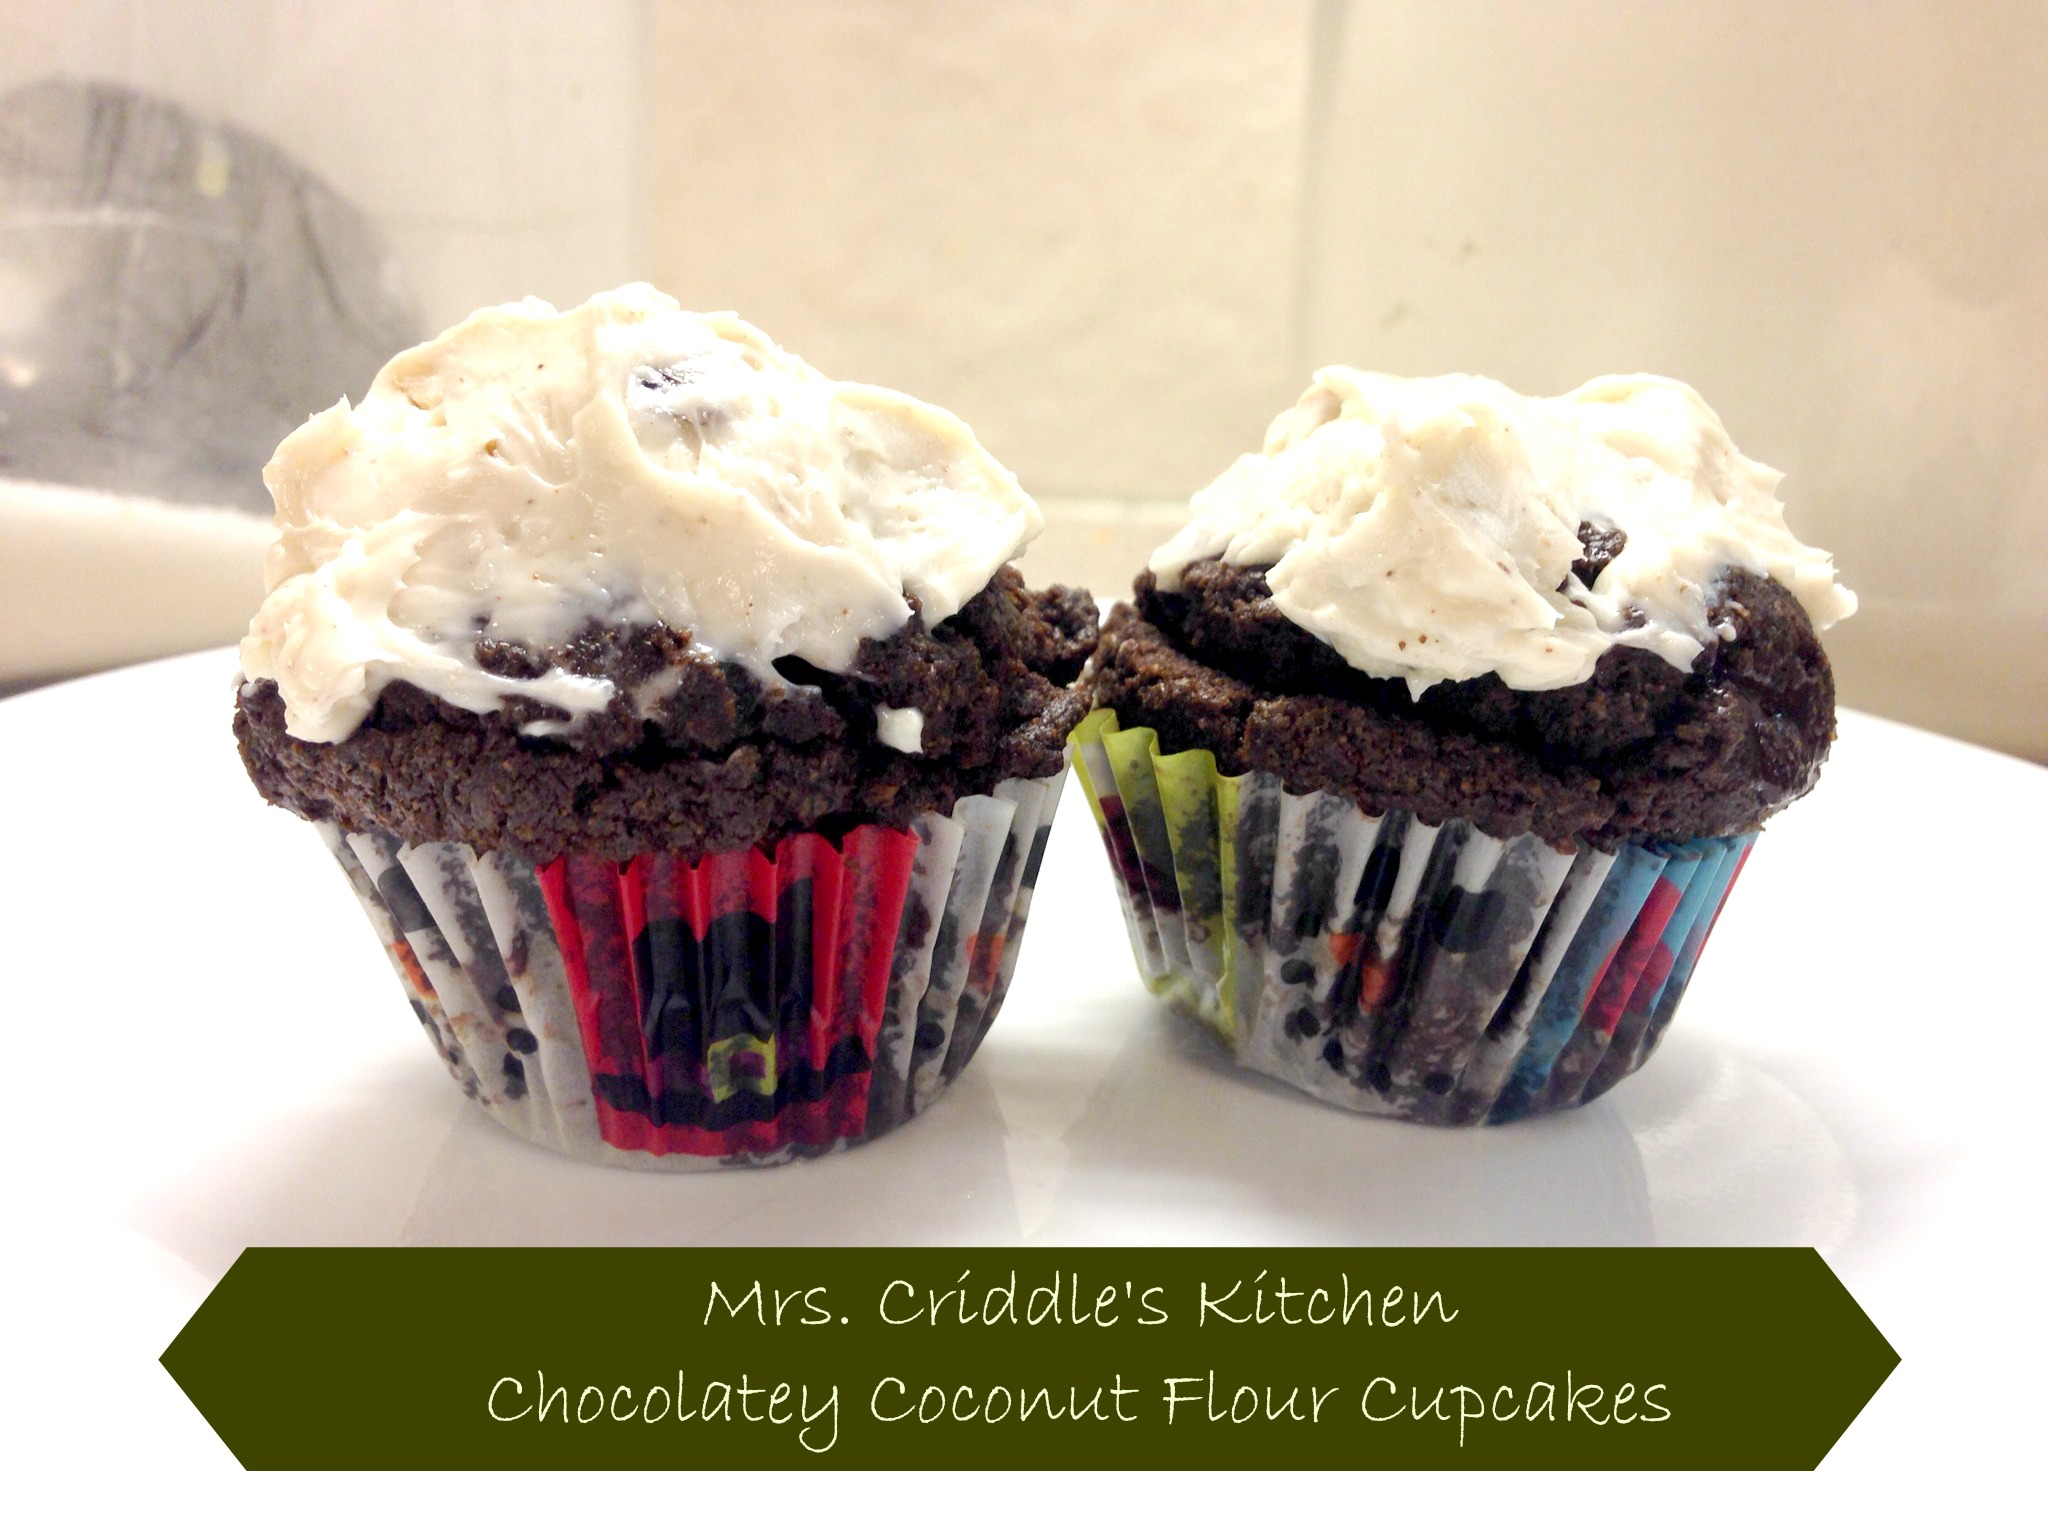 Chocolate Coconut Flour Cupcakes